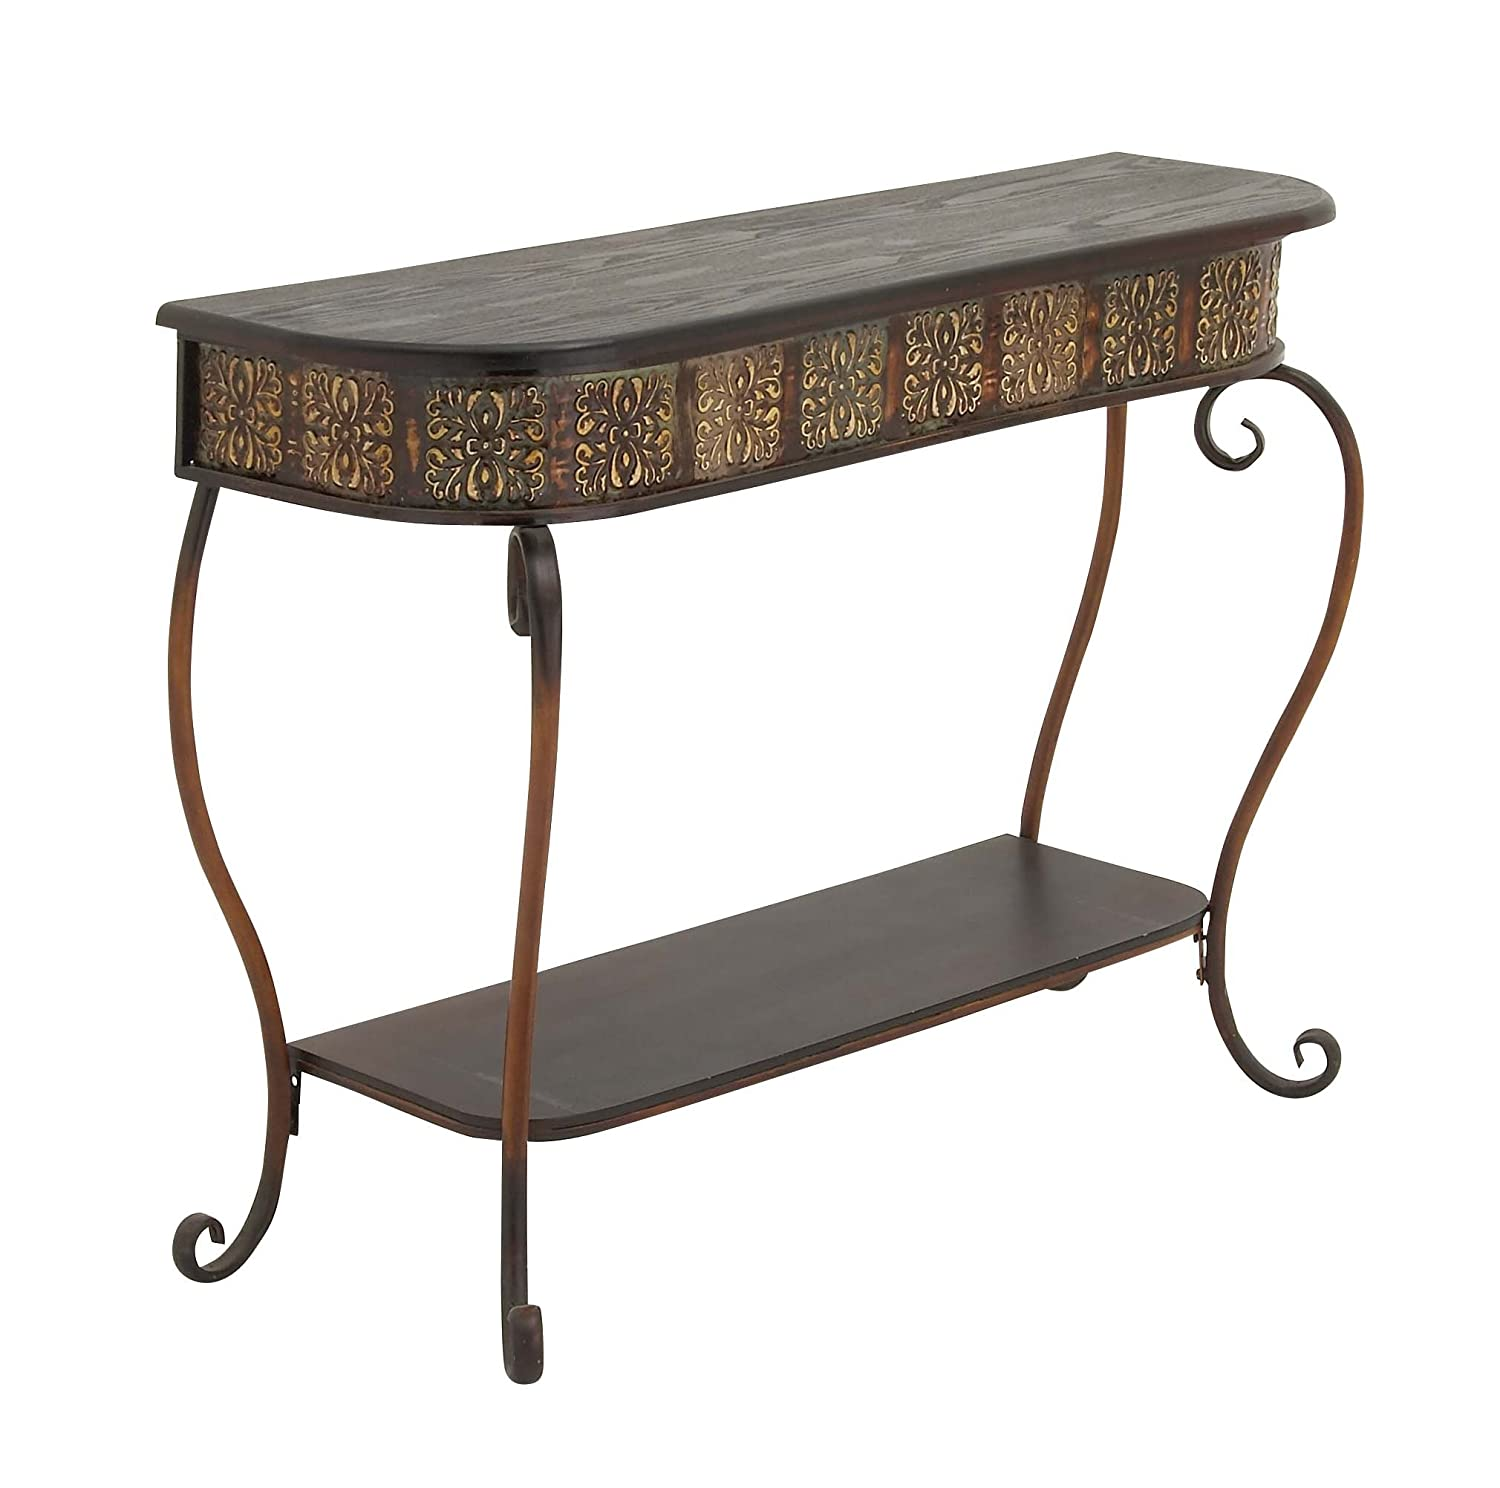 Amazon deco 79 74362 metal wood console table 32 x 43 amazon deco 79 74362 metal wood console table 32 x 43 kitchen dining geotapseo Images